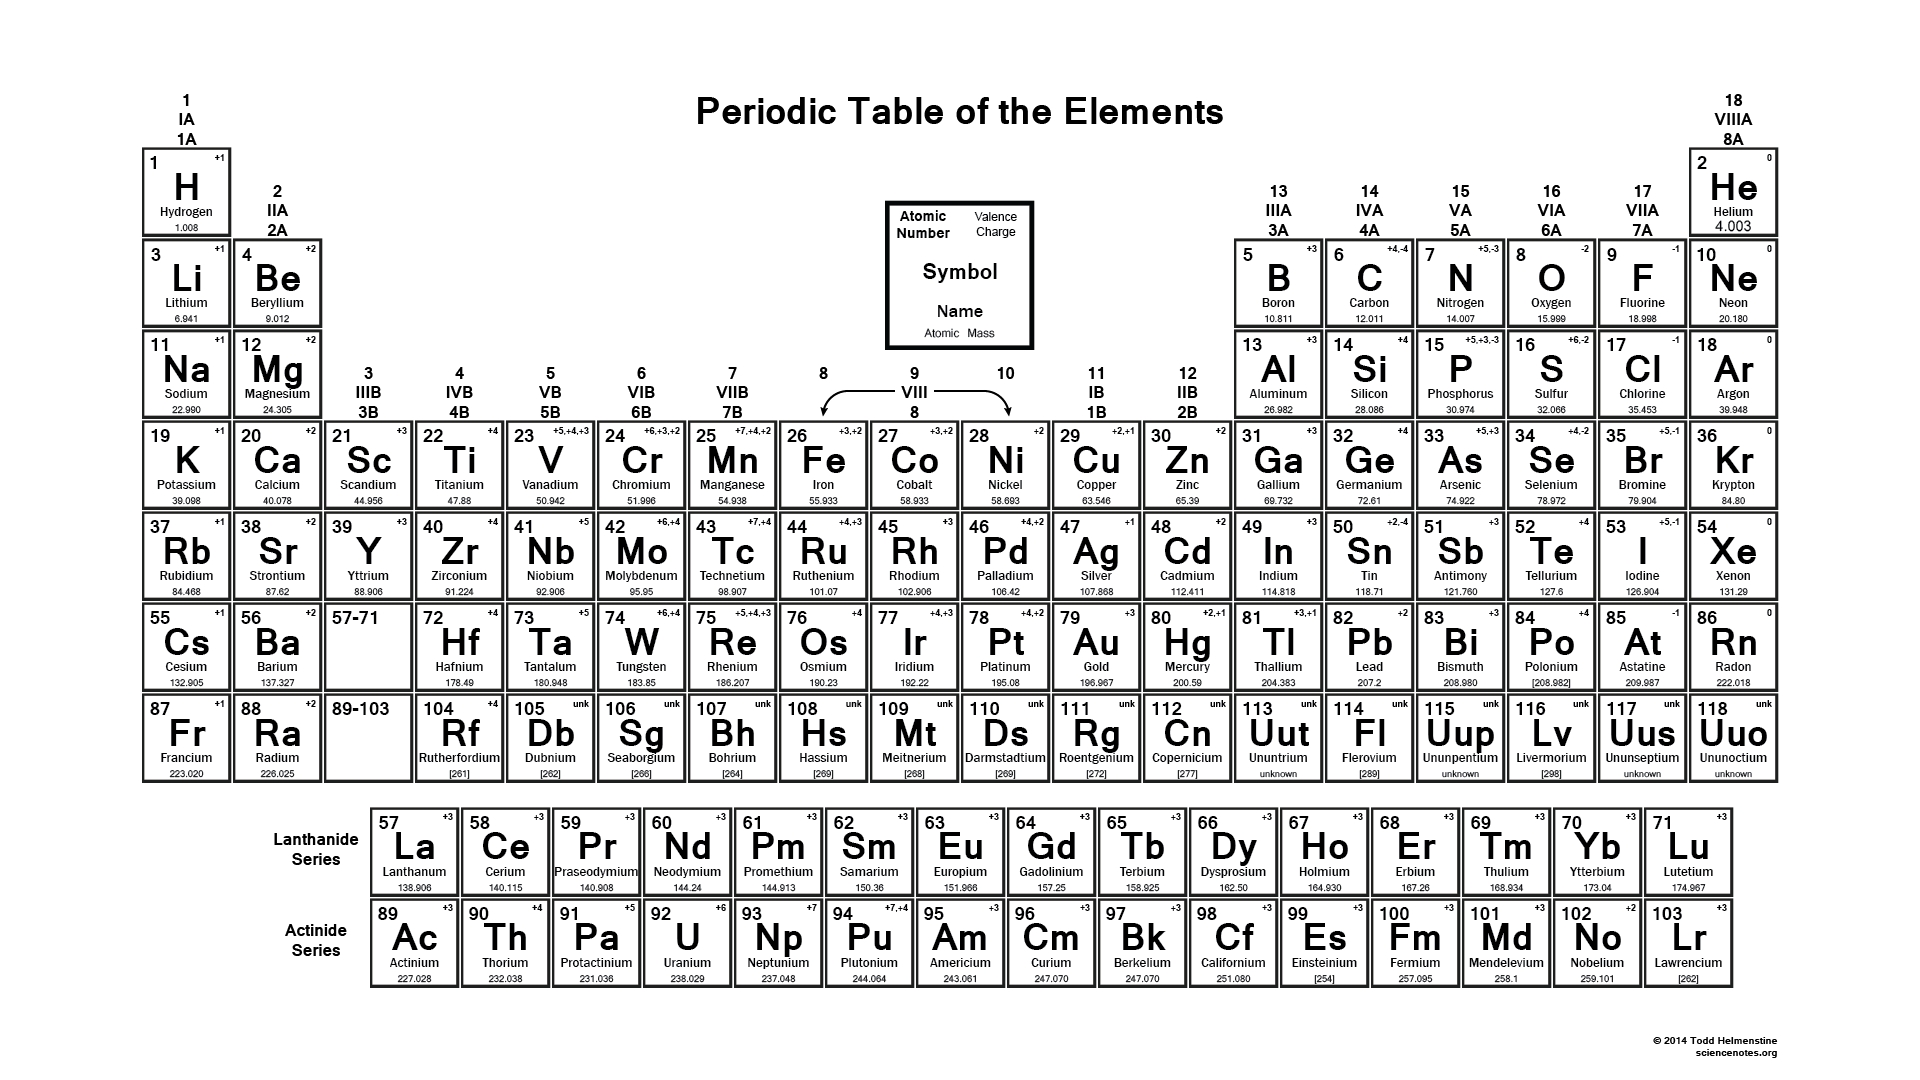 This Periodic Table Contains The Number Symbol Name Atomic Masost Common